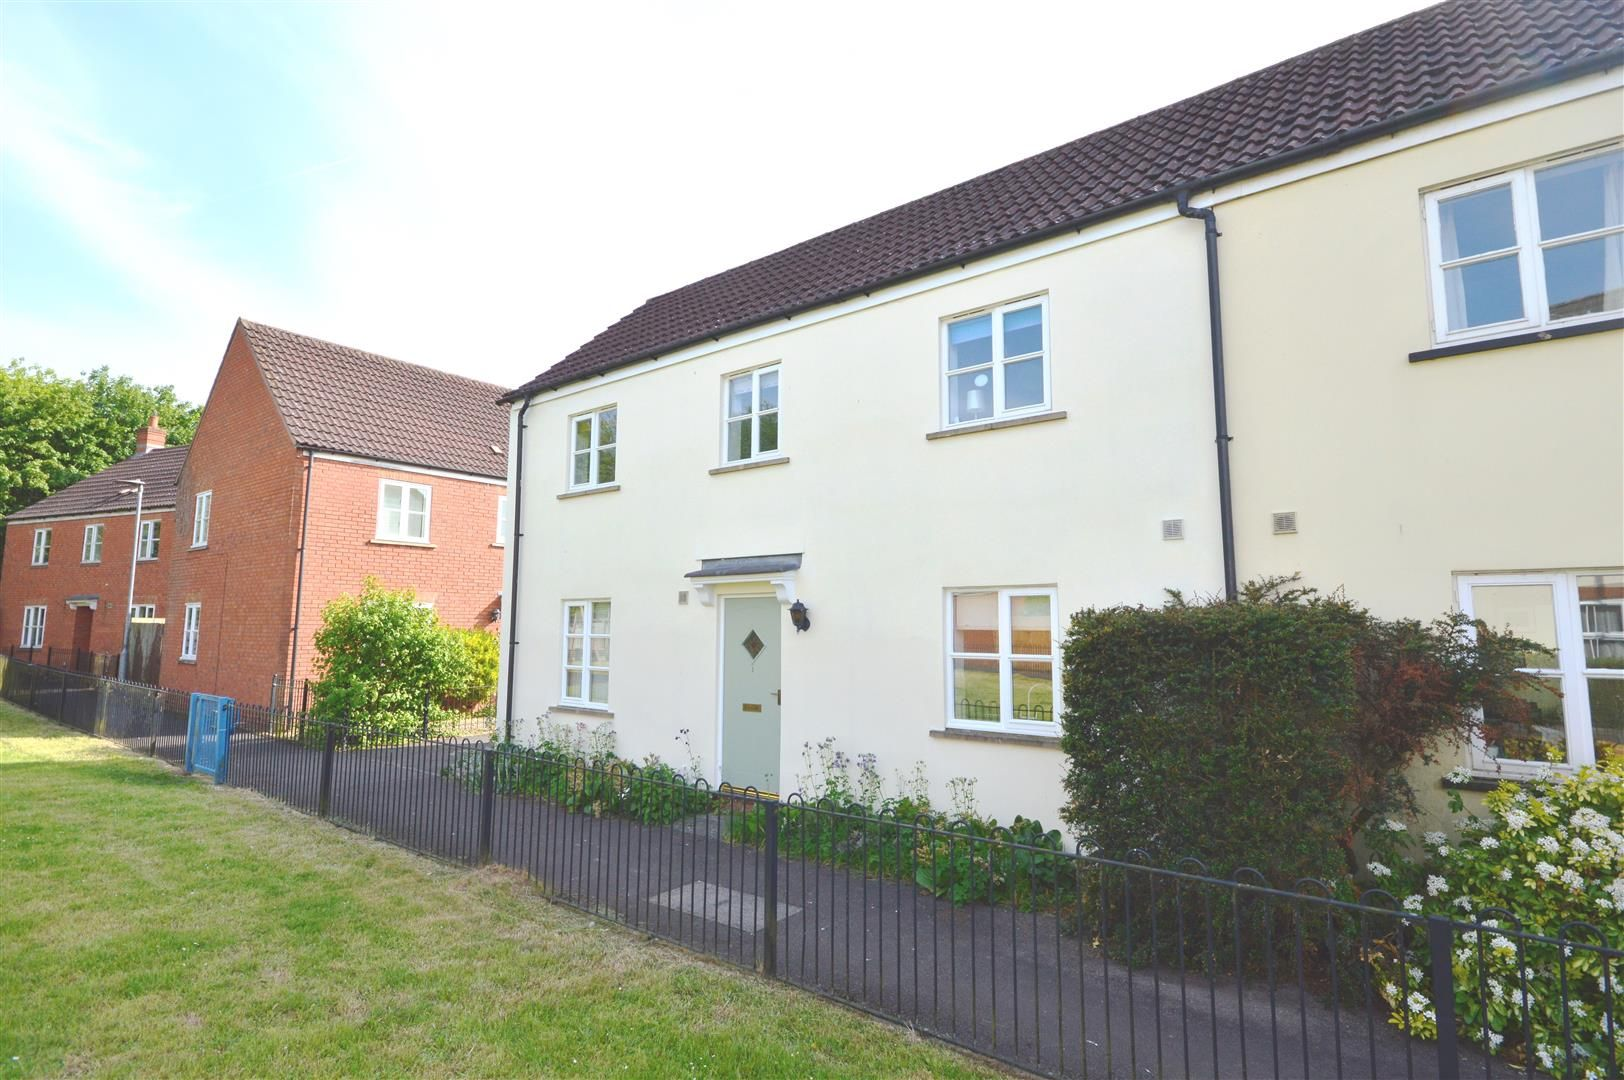 3 bed semi-detached to rent, HR8